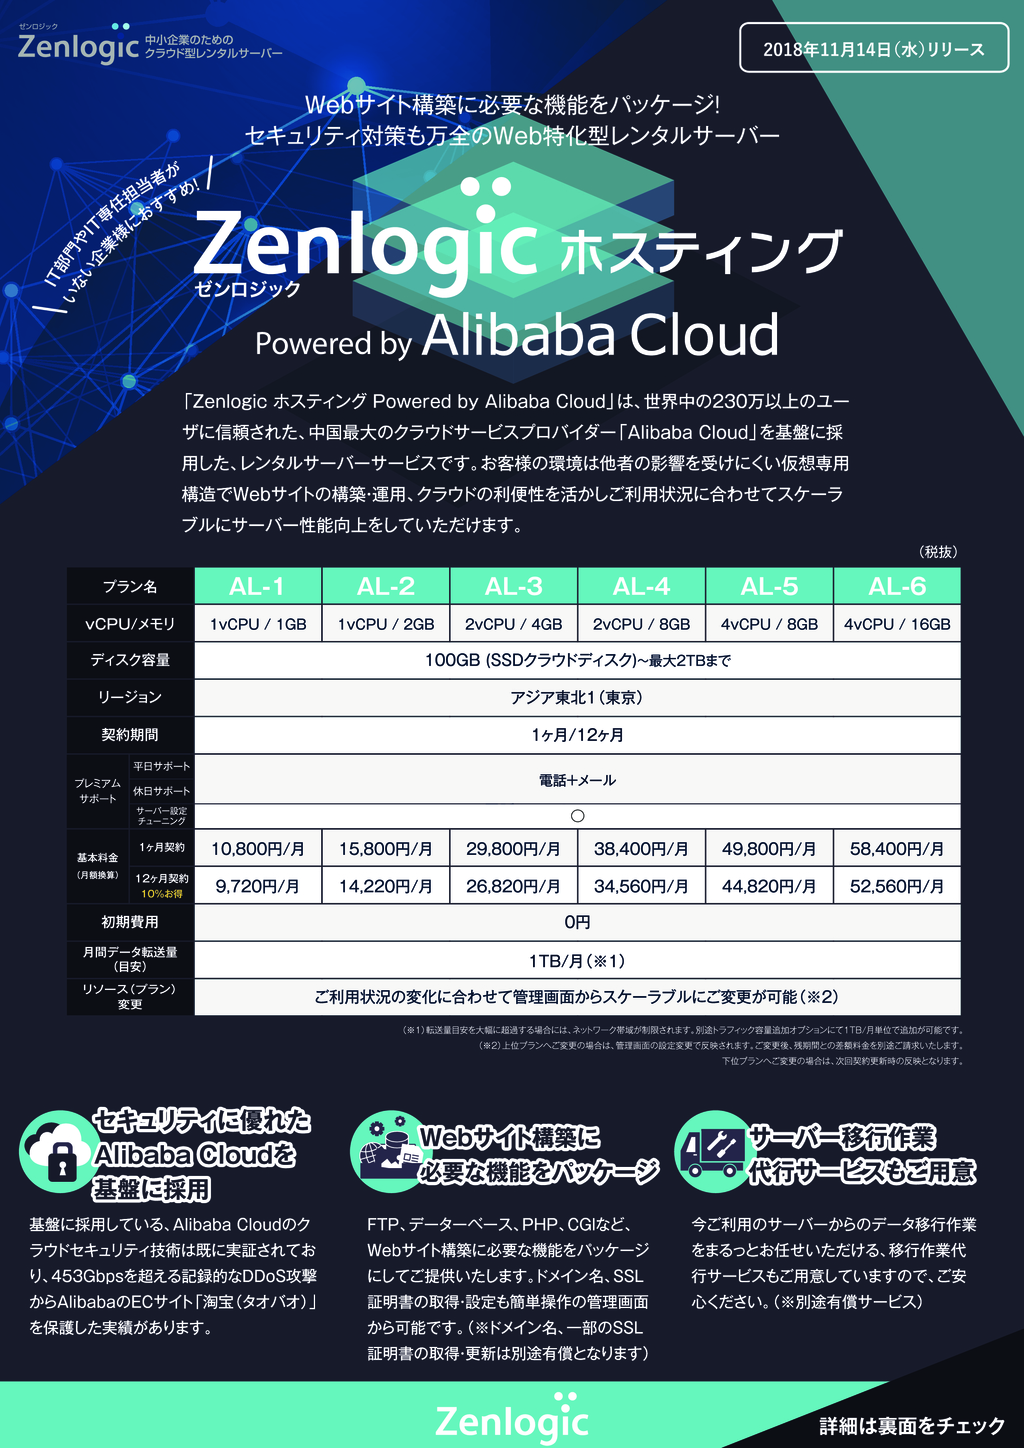 Zenlogicホスティング Powered by Alibaba Cloudの資料